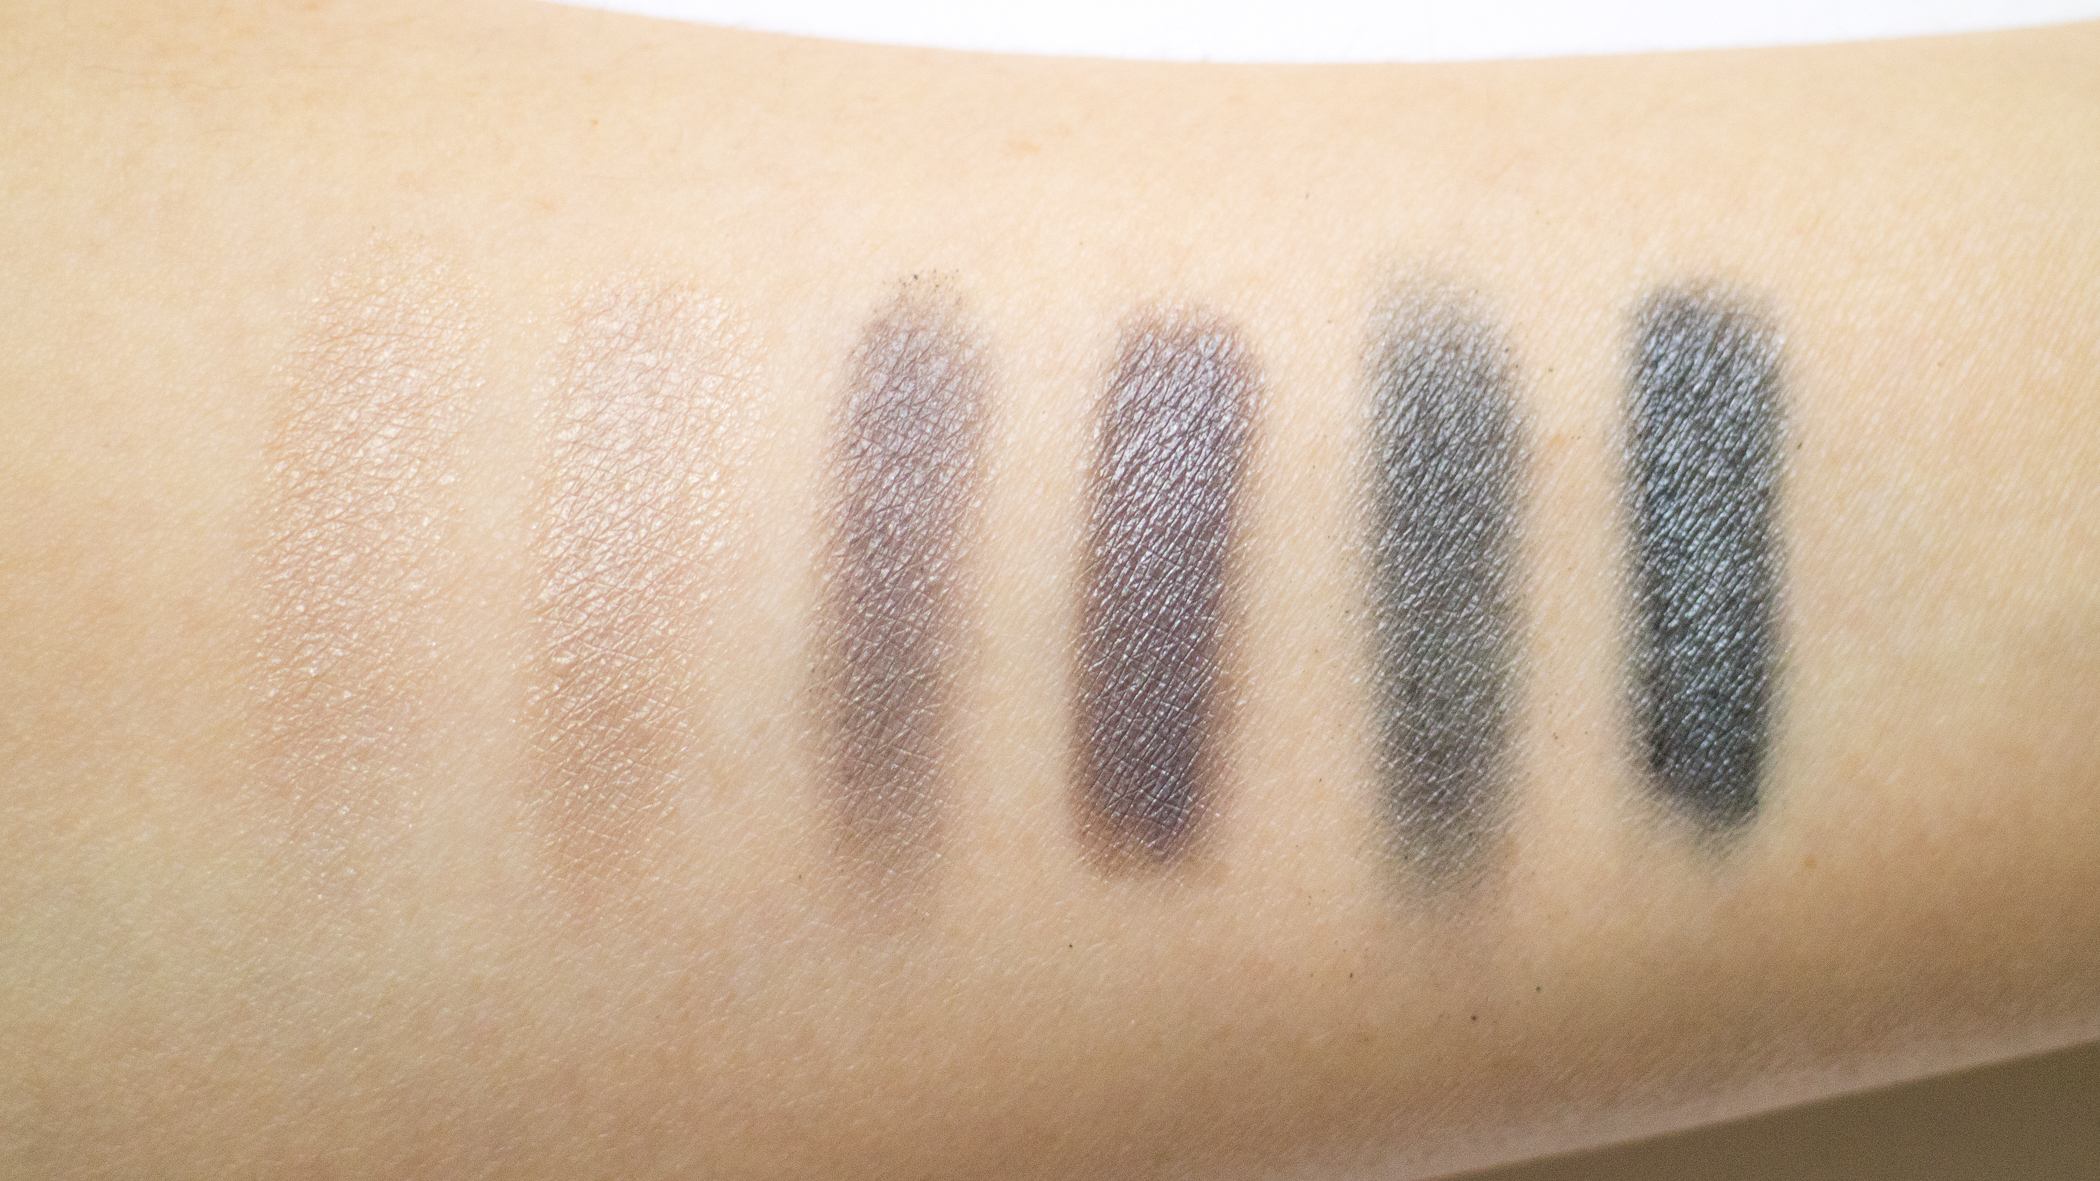 Top Row of shadows, each color swatched onto primer - dry on the left, and wet on the right.